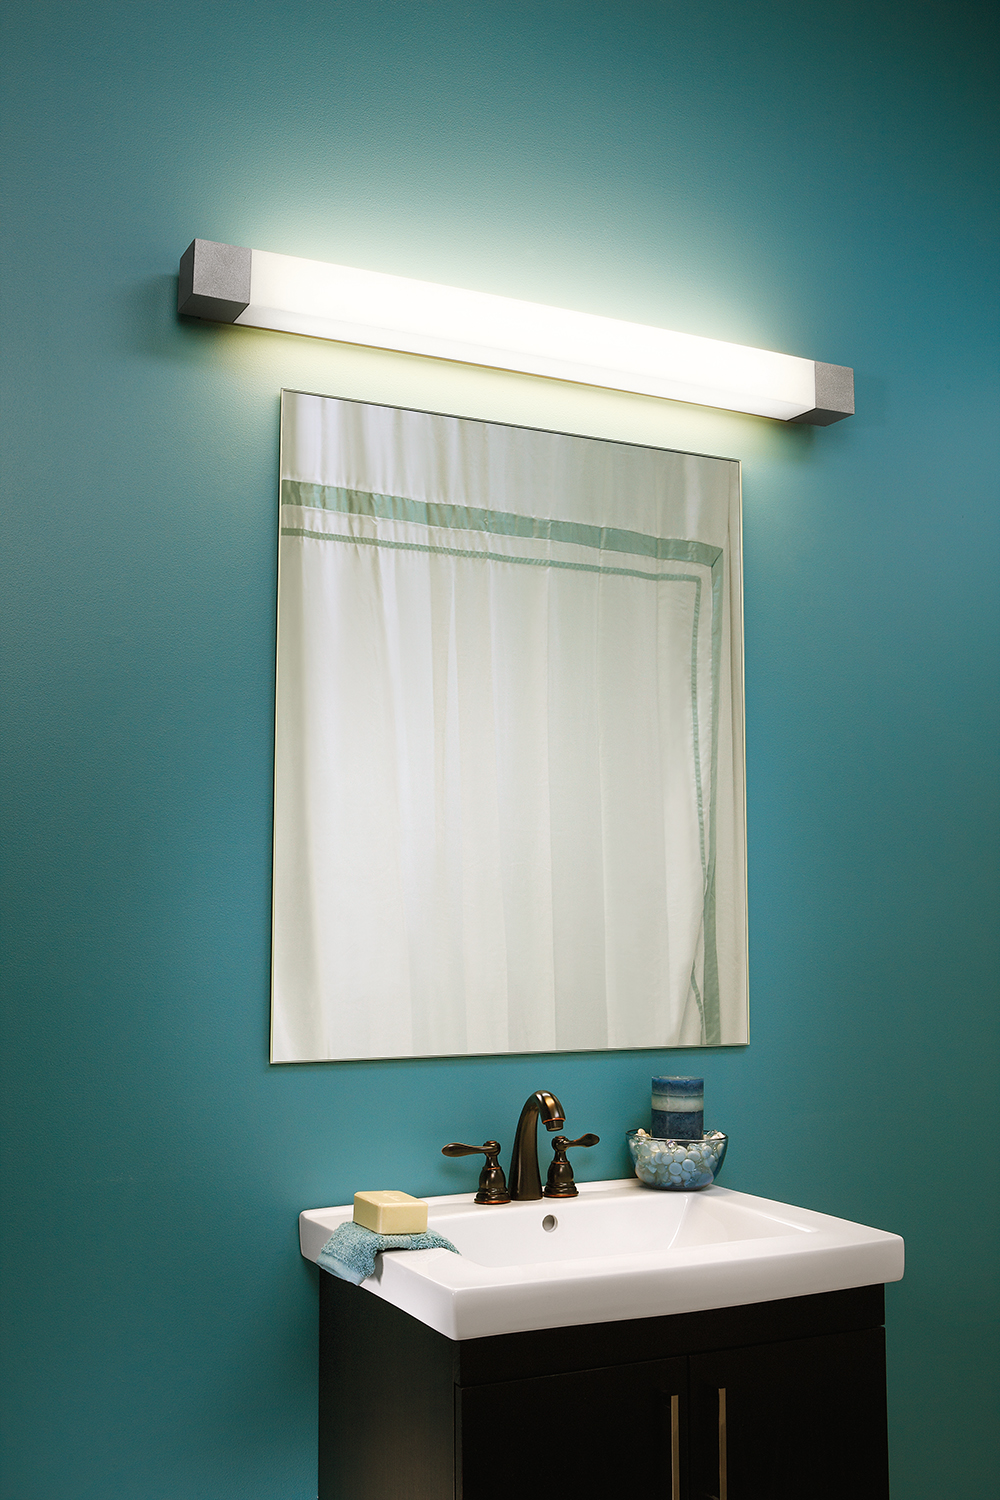 Shine modern vanity light fixture mounted horizontally over a minimalist mirror and vanity for multifamily residential design.